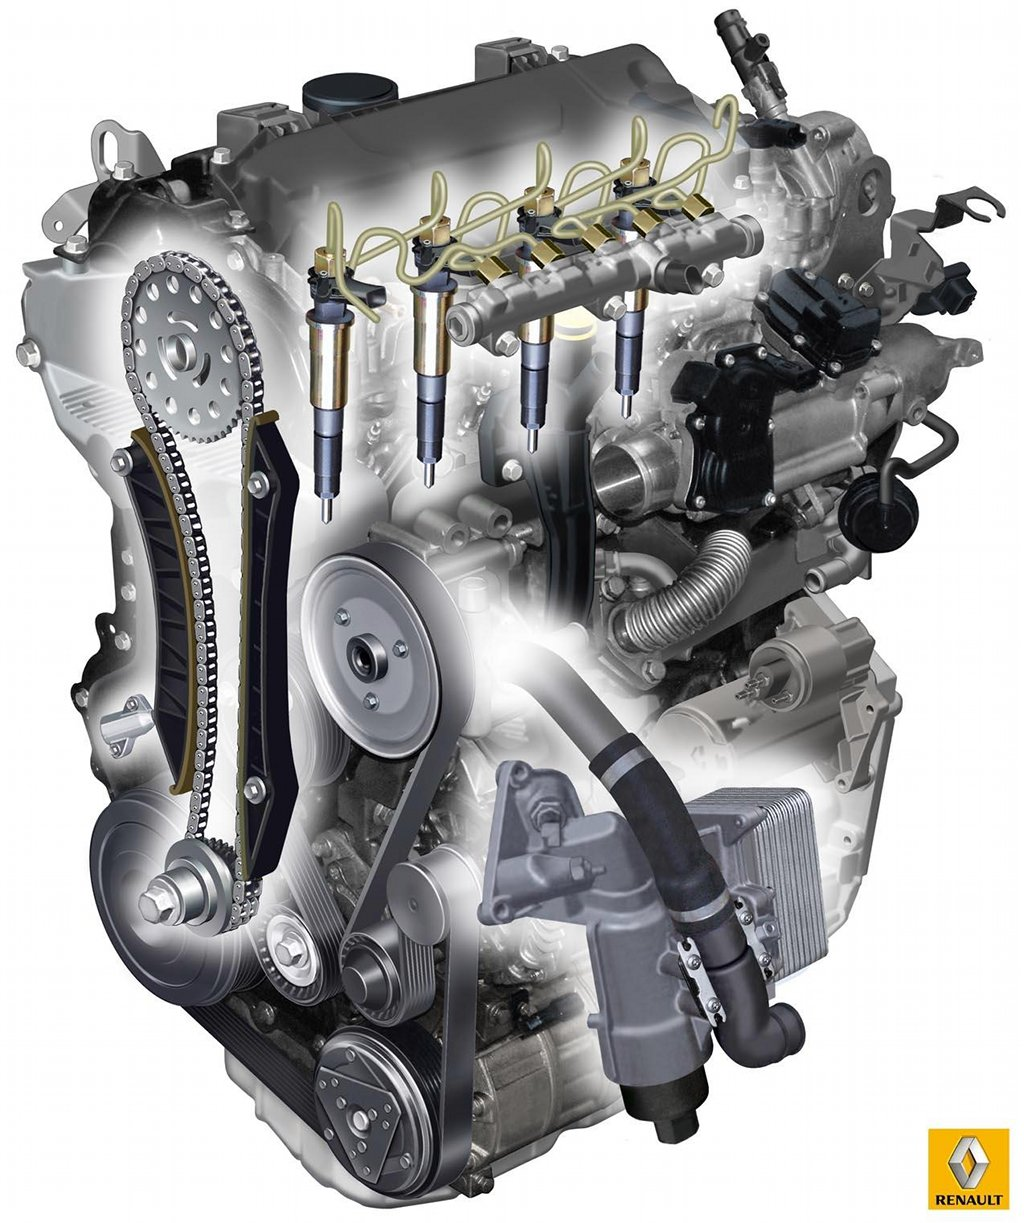 Renault Clio Engine additionally Megane Mk Obd further Renault Twingo in addition Maxresdefault also B F D. on renault clio engine diagram